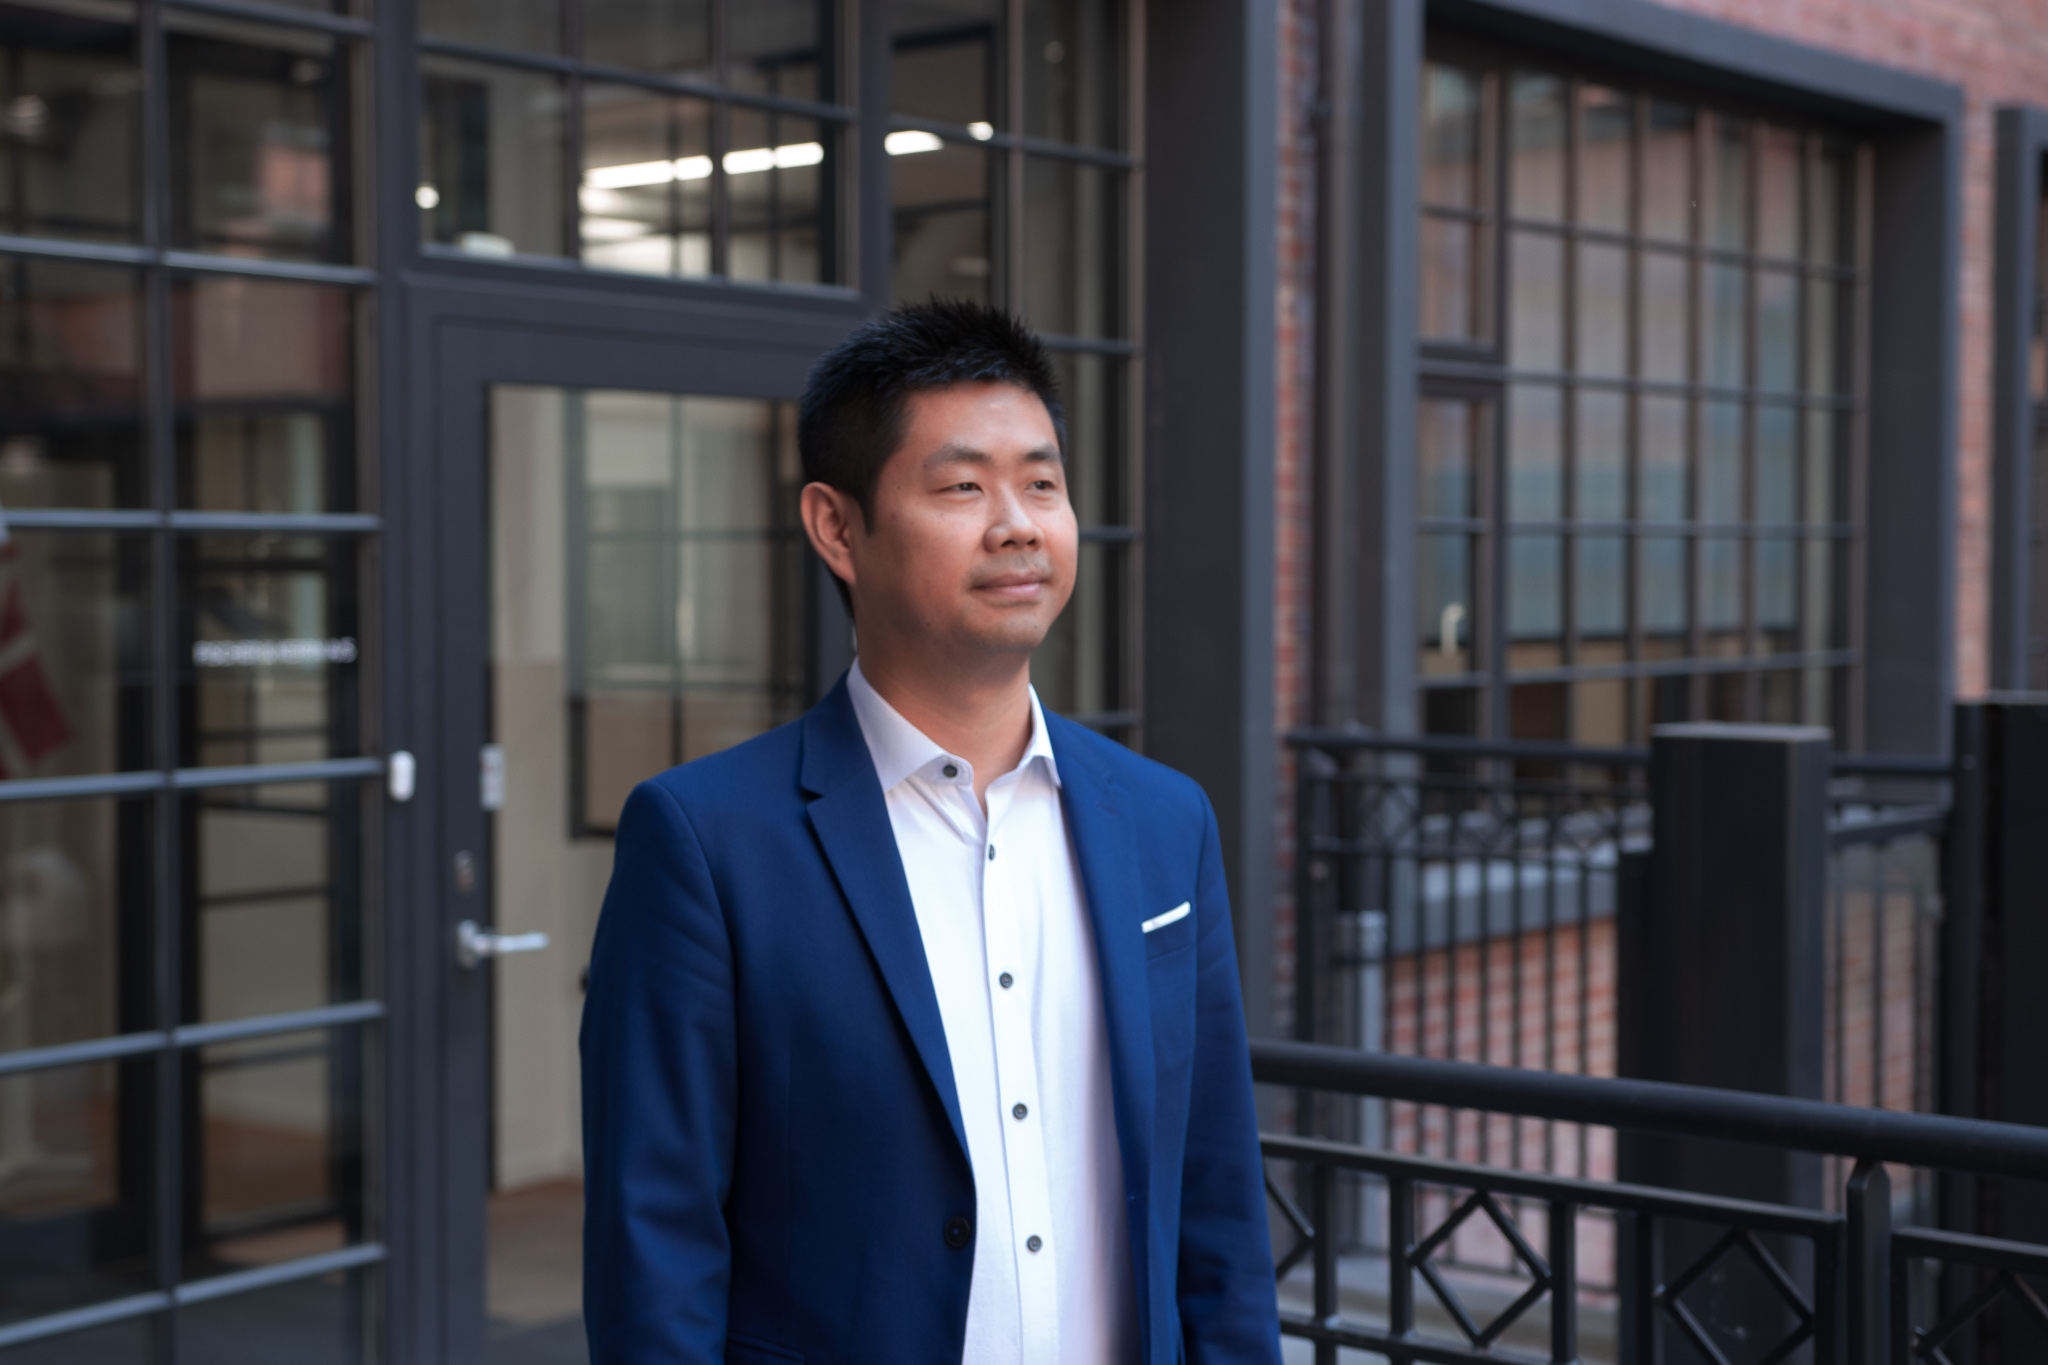 Youjie Zhang is Delivery Director within Monstarlab's Health & Life Science vertical